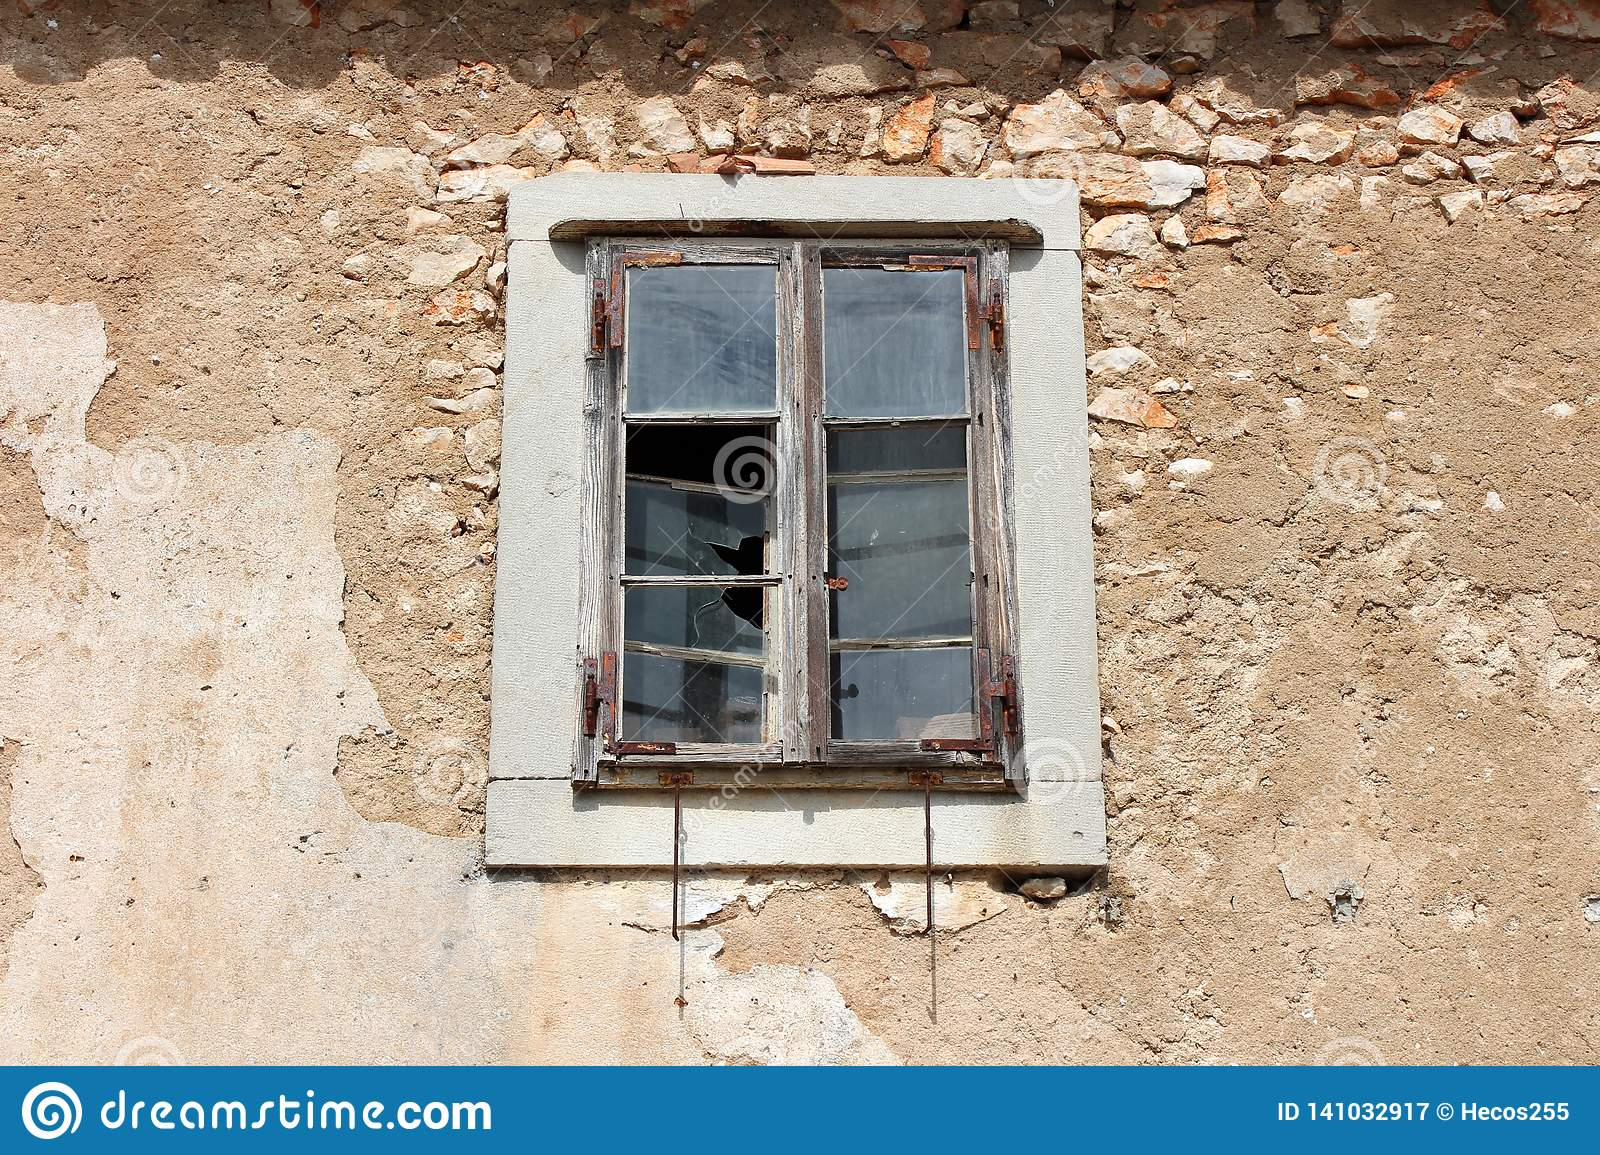 Wooden window on abandoned house with broken glass mounted on cracked frame with rusted metal hinges surrounded with facade and